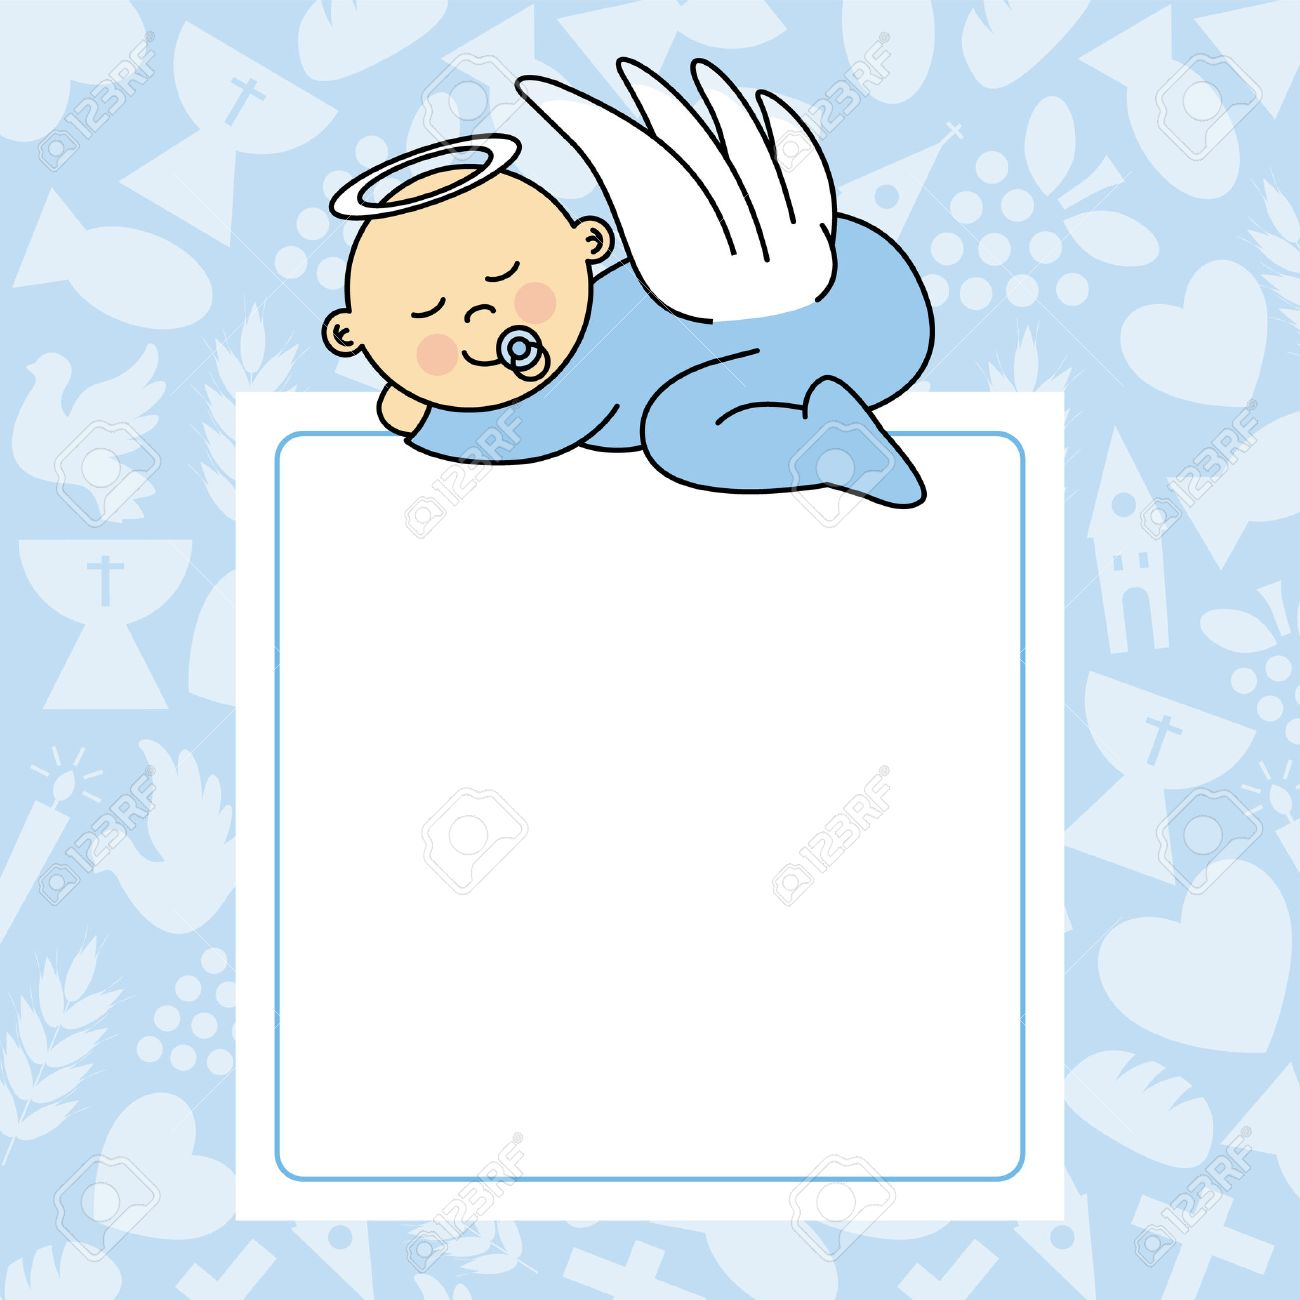 baby boy sleeping. blank space for photo or text.